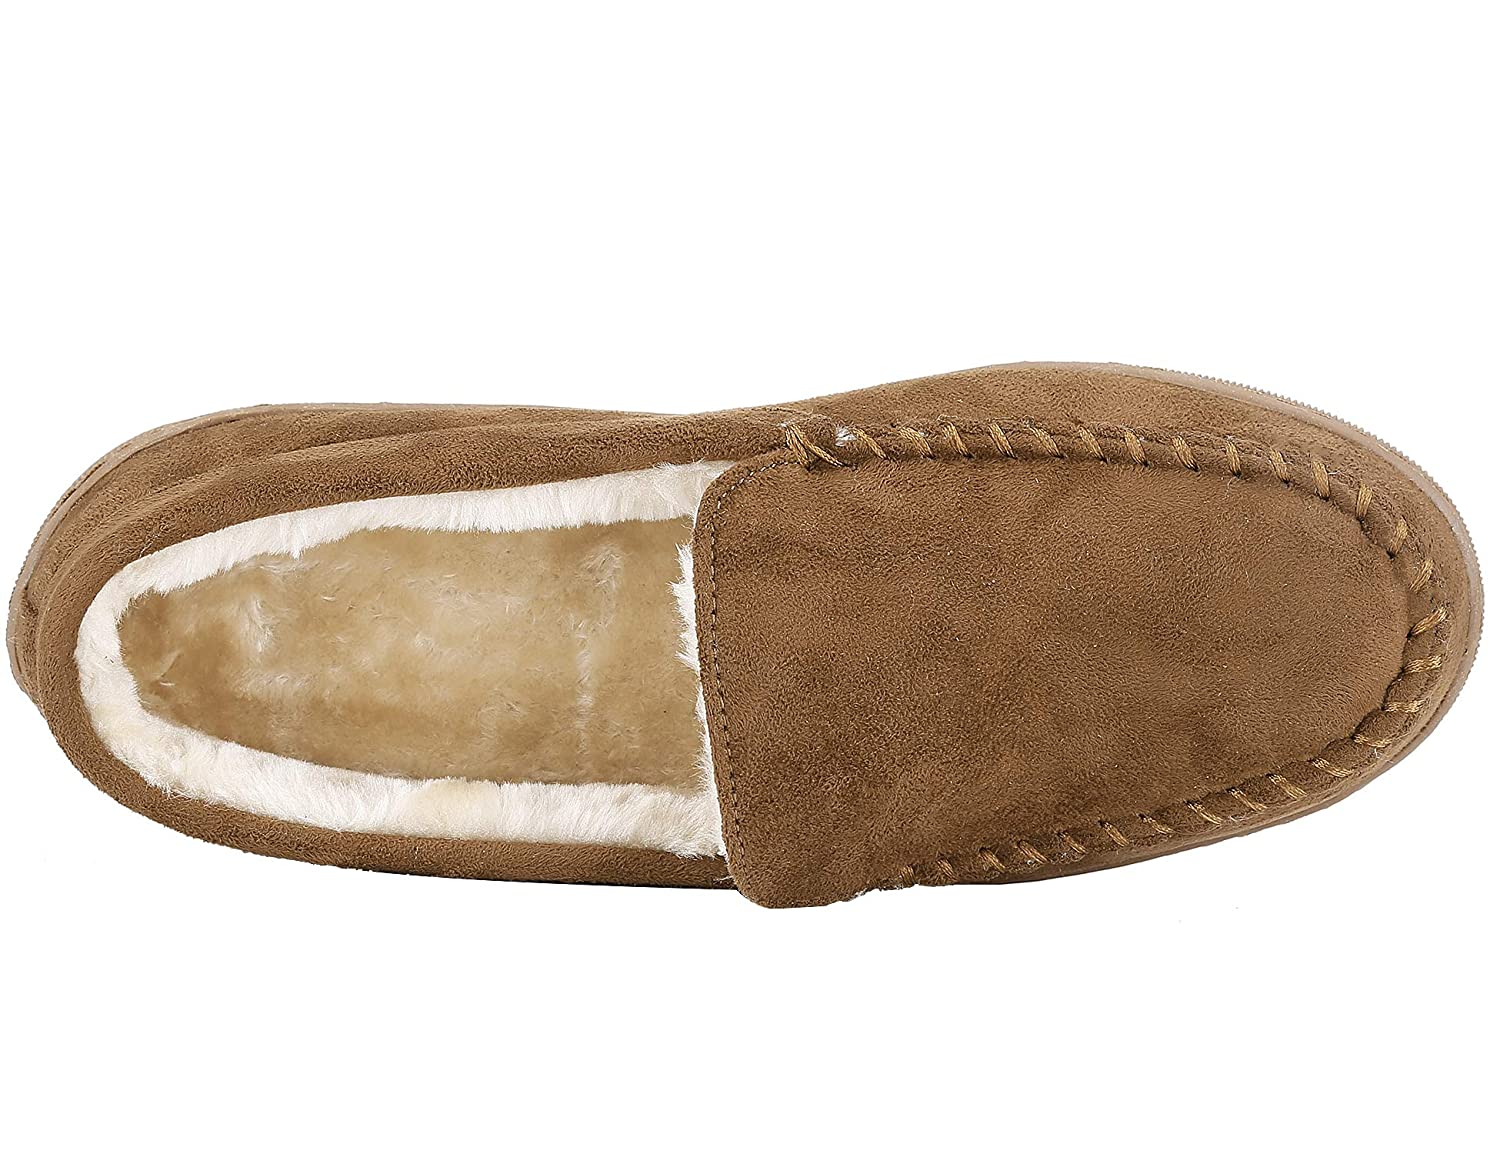 ea8a900b328 MaxMuxun Men Shoes Faux Fur Slip On Flat Moccasin Loafer  Amazon.co.uk   Shoes   Bags